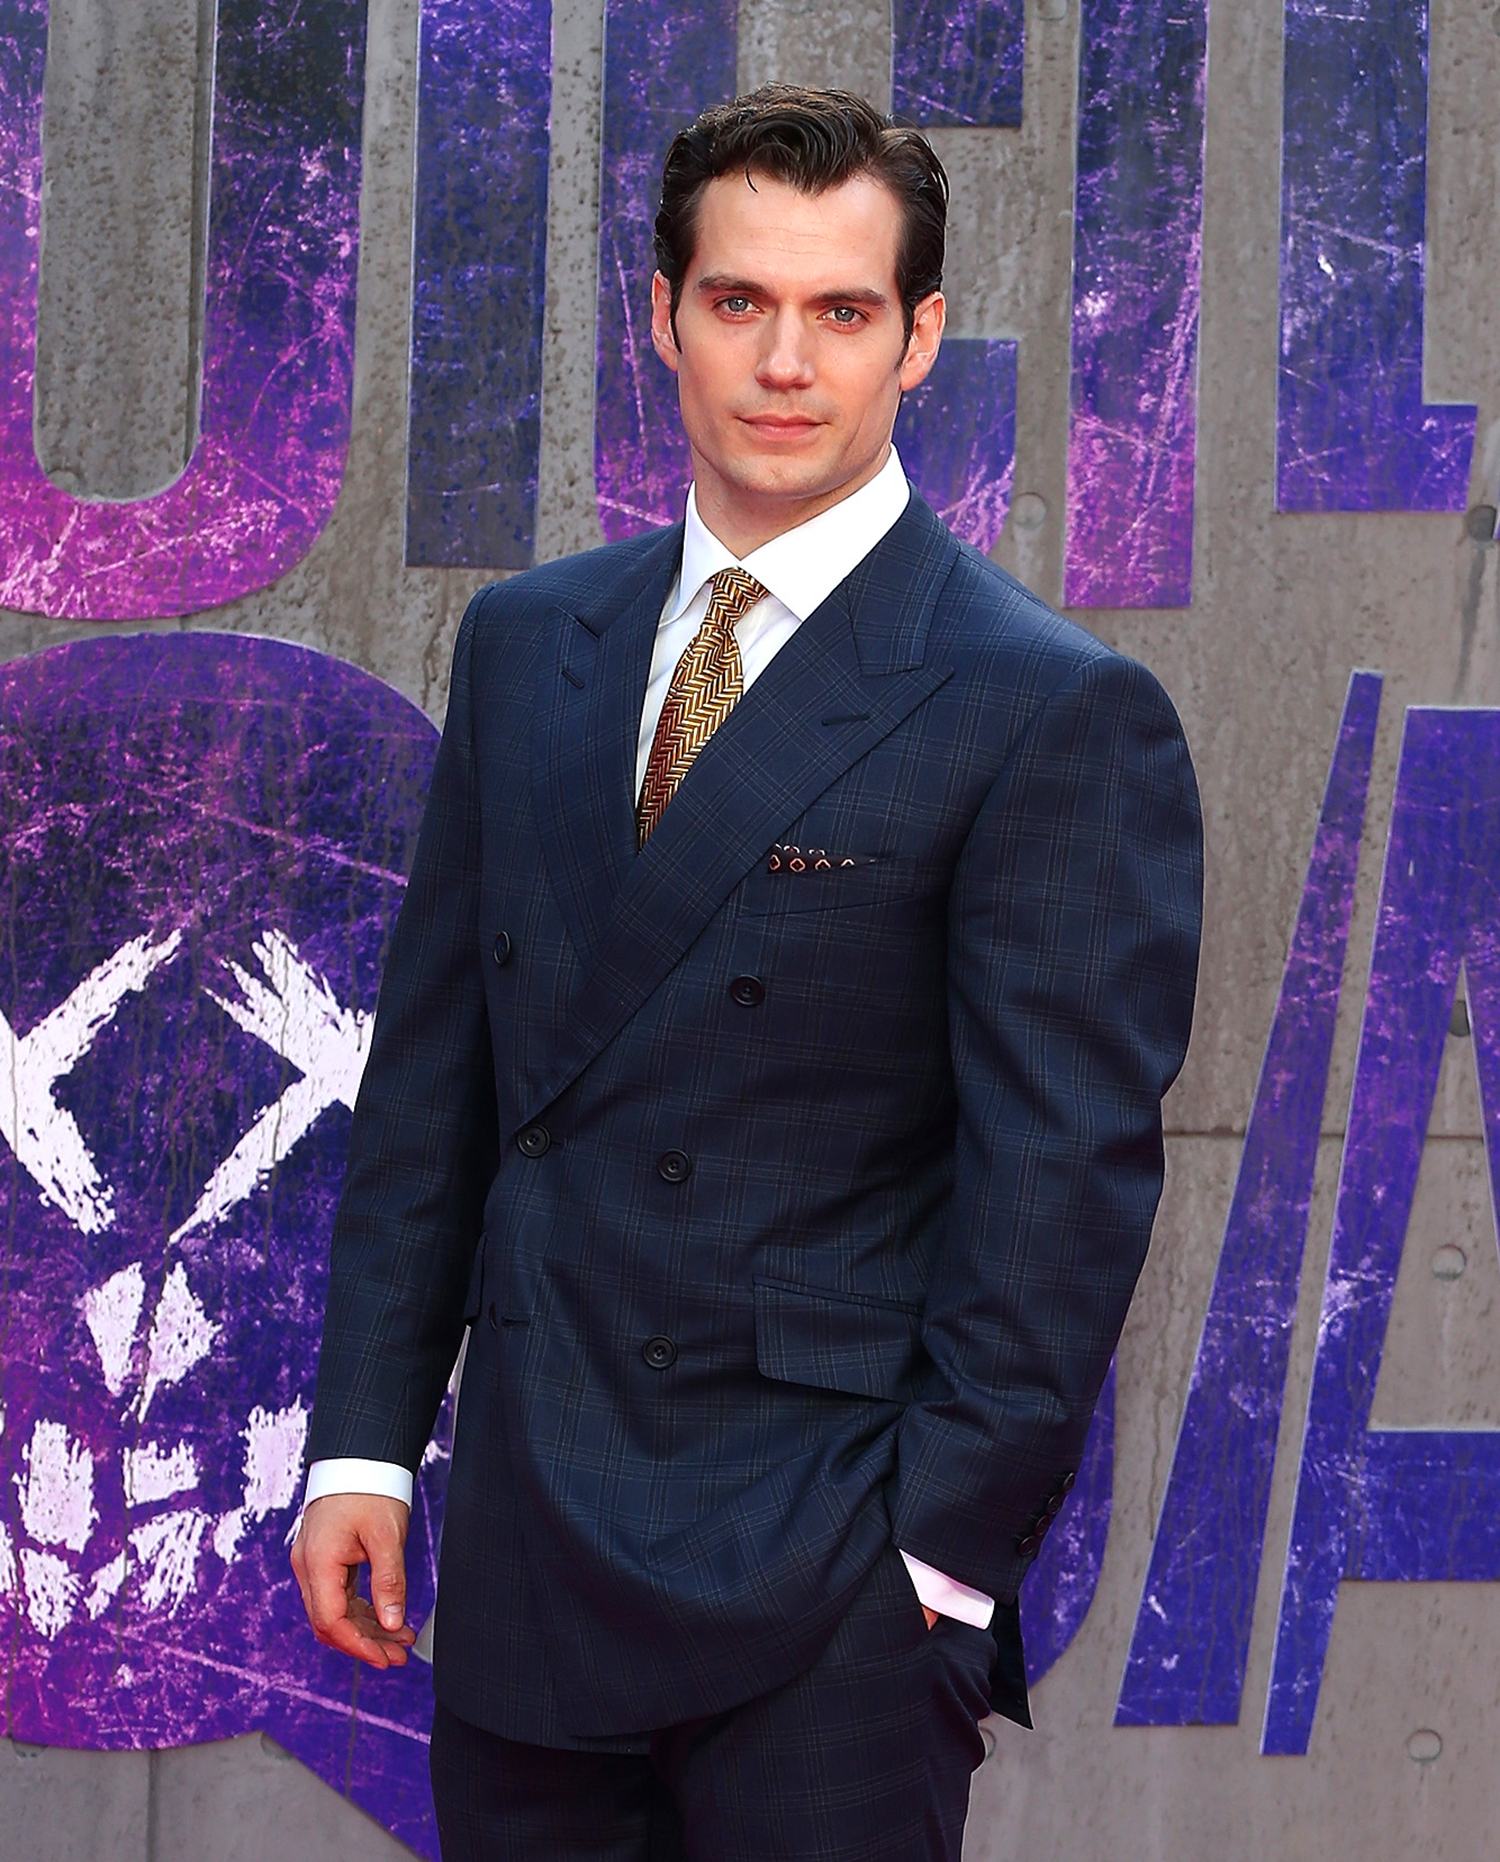 Henry Cavill debunks death rumours, expresses shock on the news